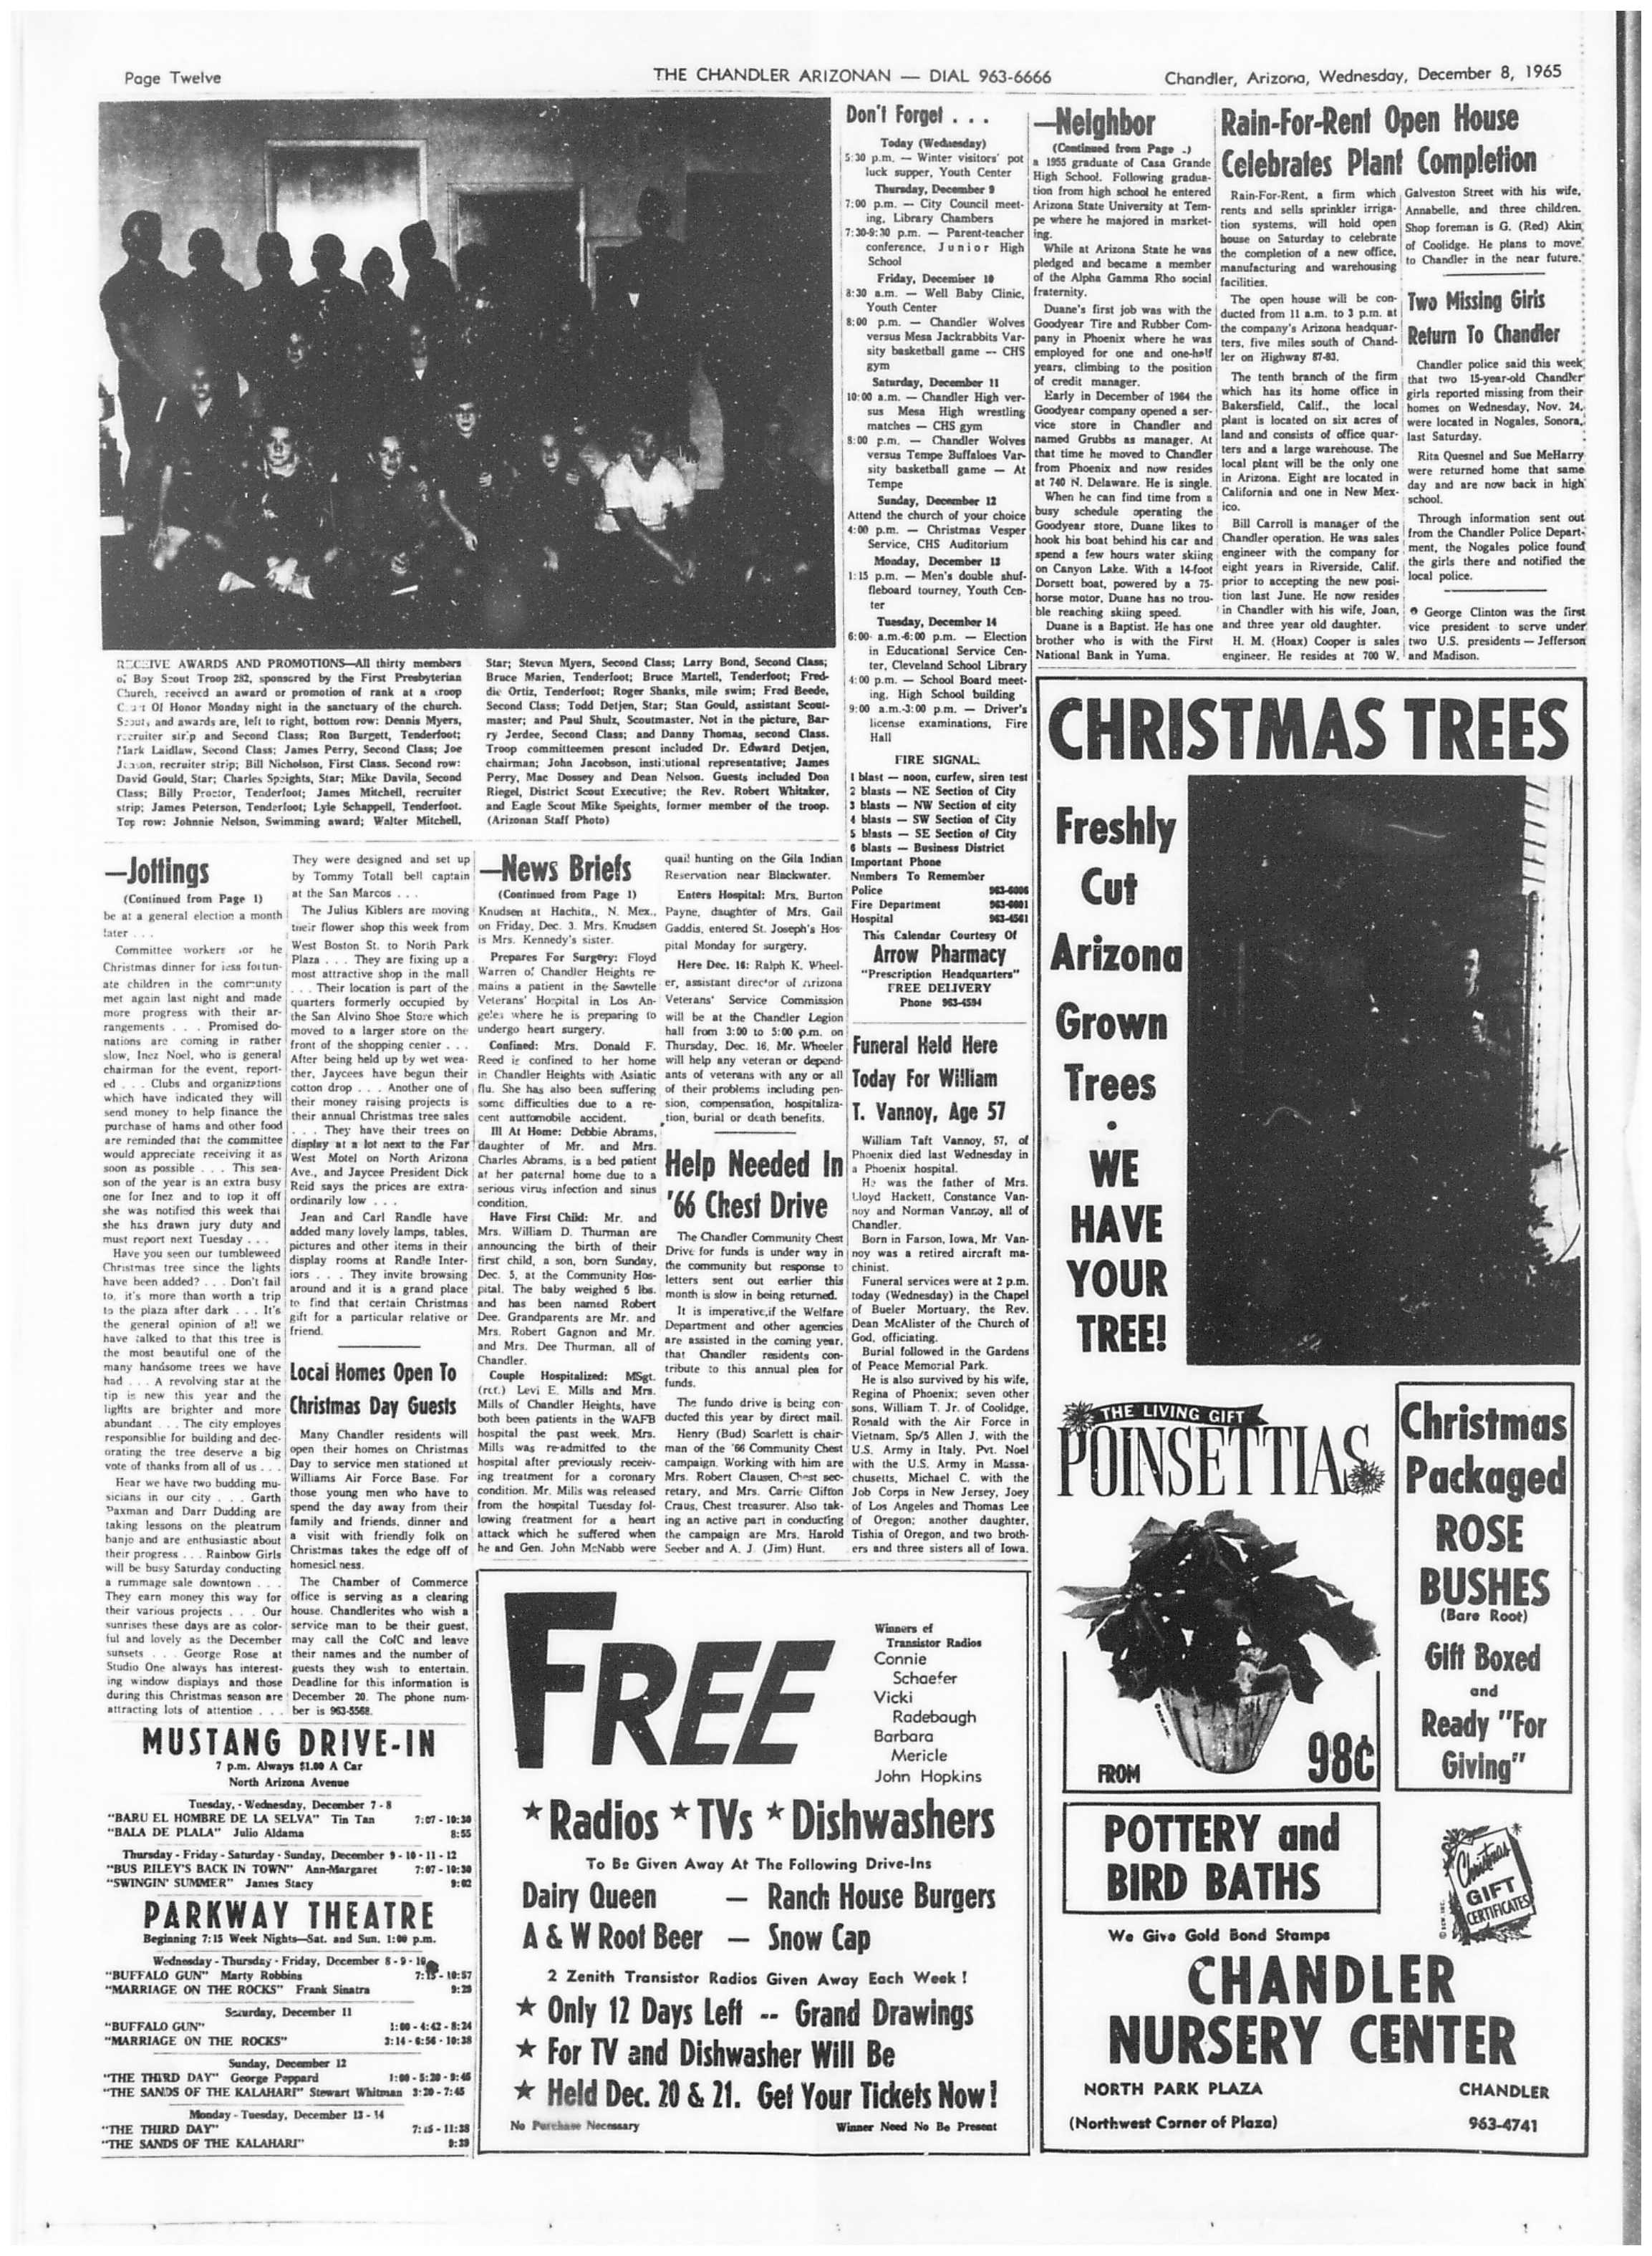 12-8-1965 - Page 12 .jpg